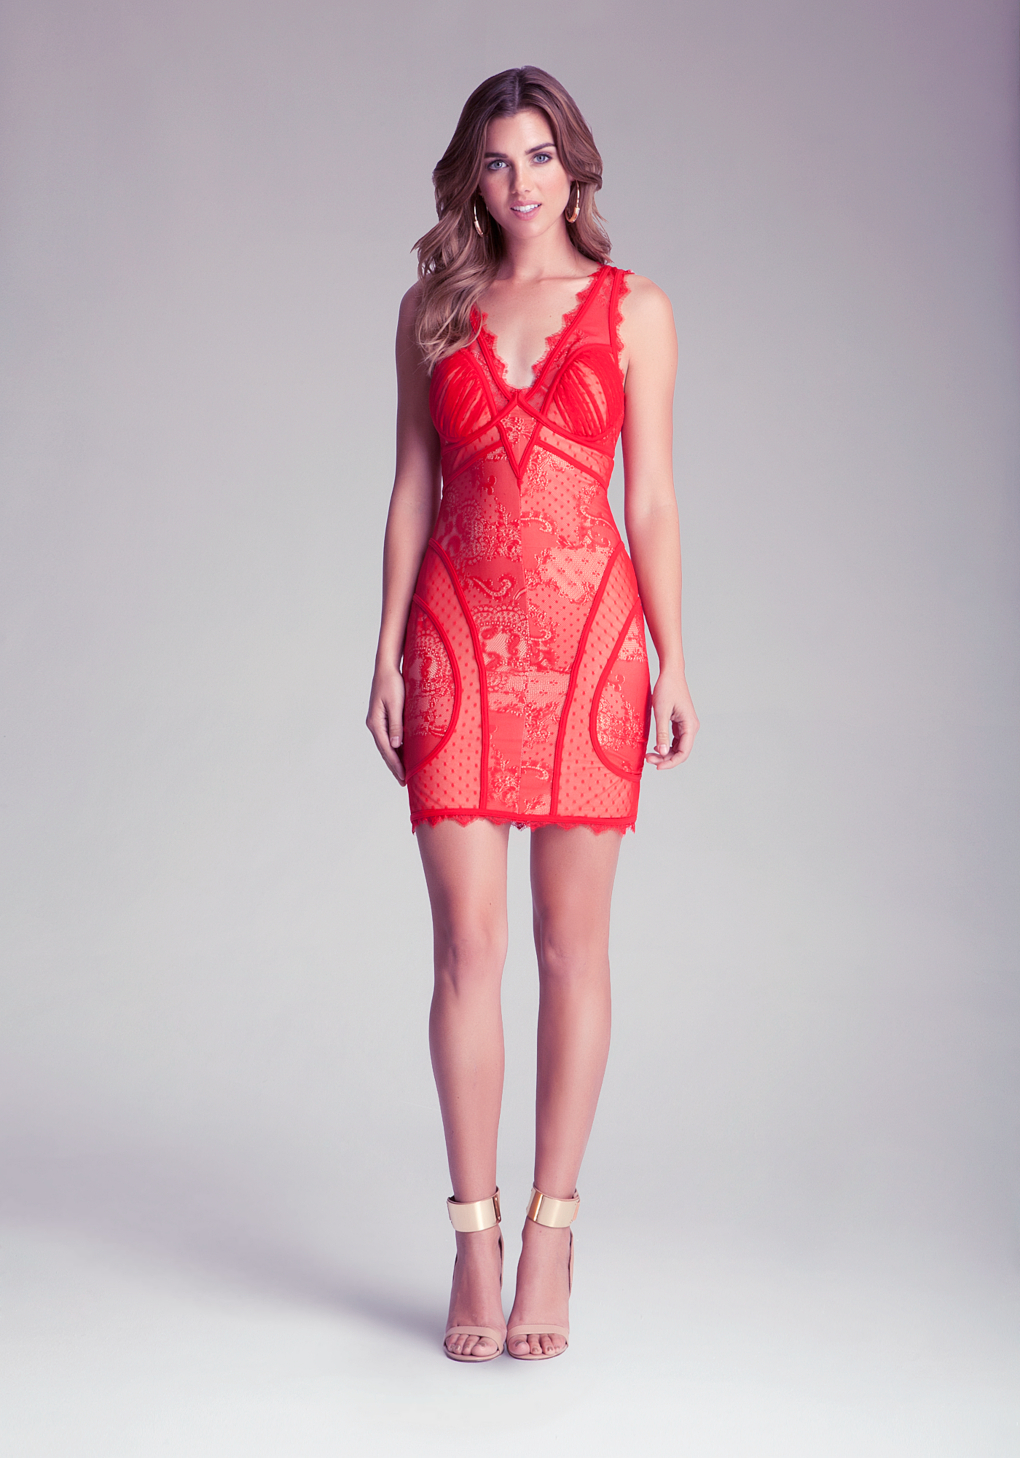 1e9bec0d984 Bebe V Neck Lace Dress in Red - Lyst